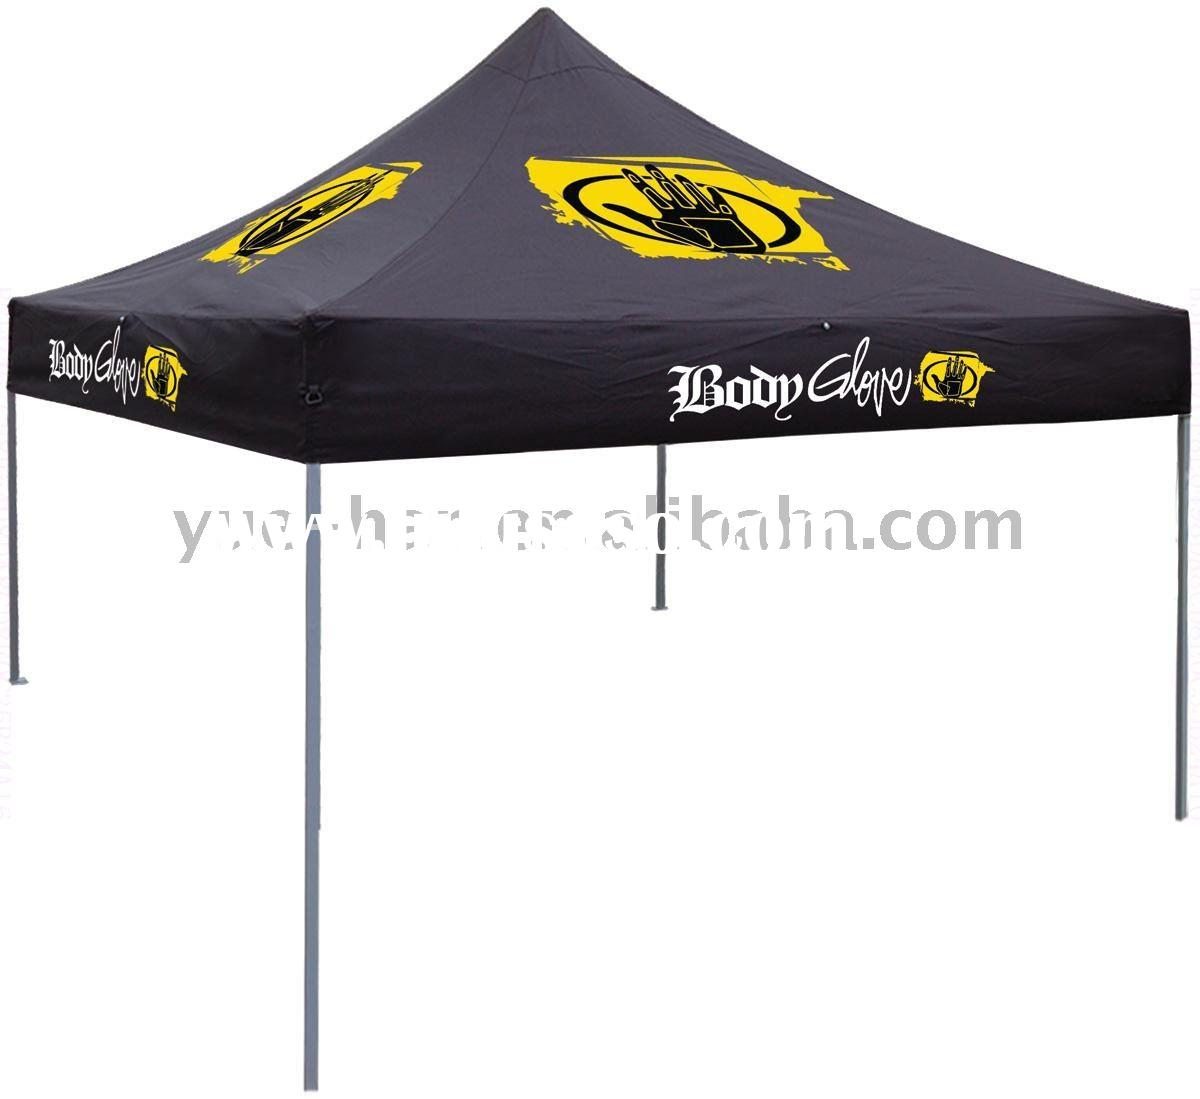 King Canopy | Replacement Parts for Instant Pop Up Canopies